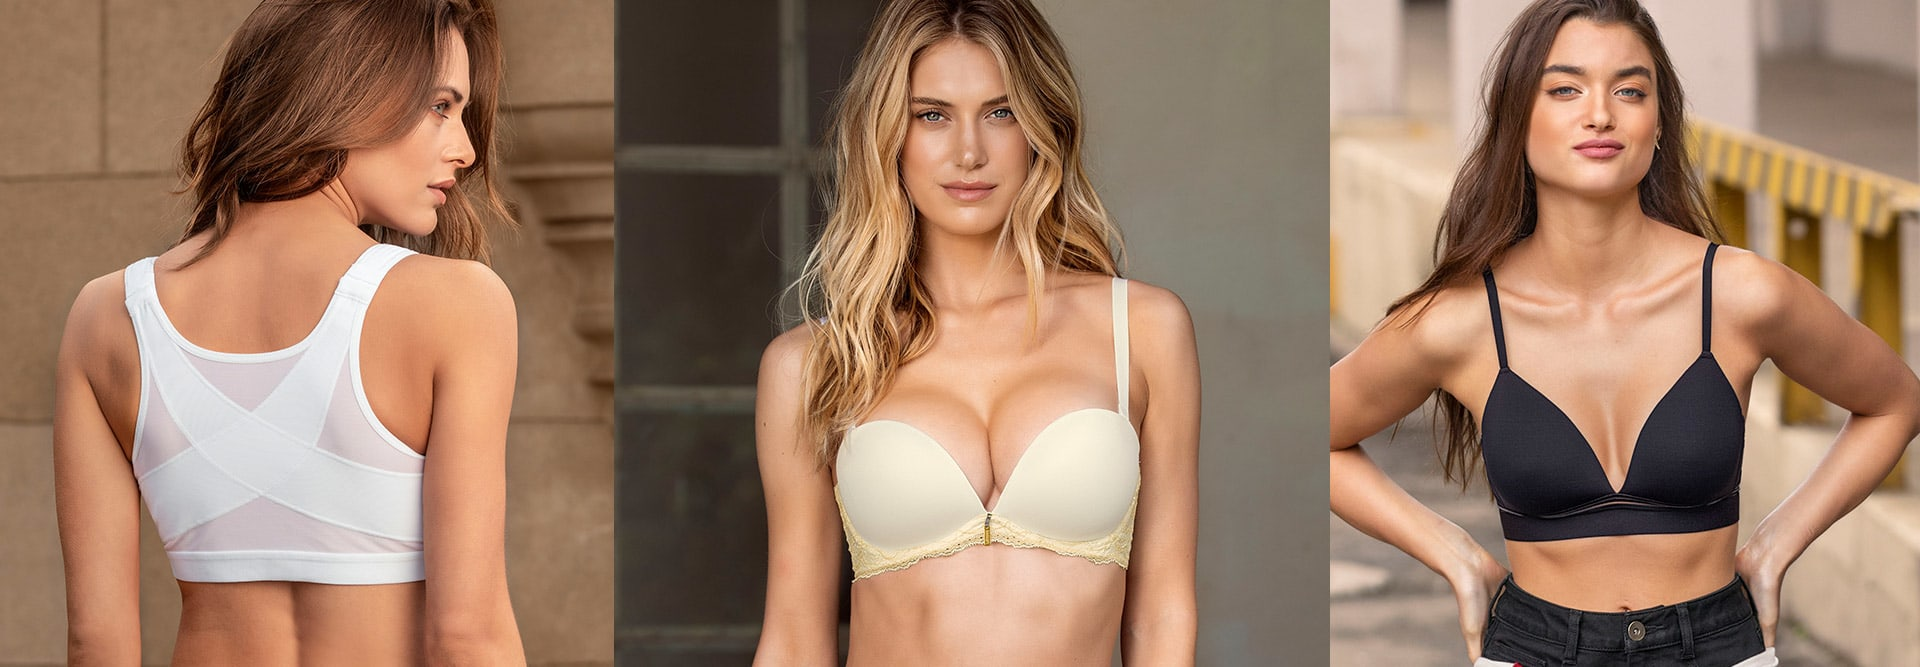 Types of bra: What are you looking for?